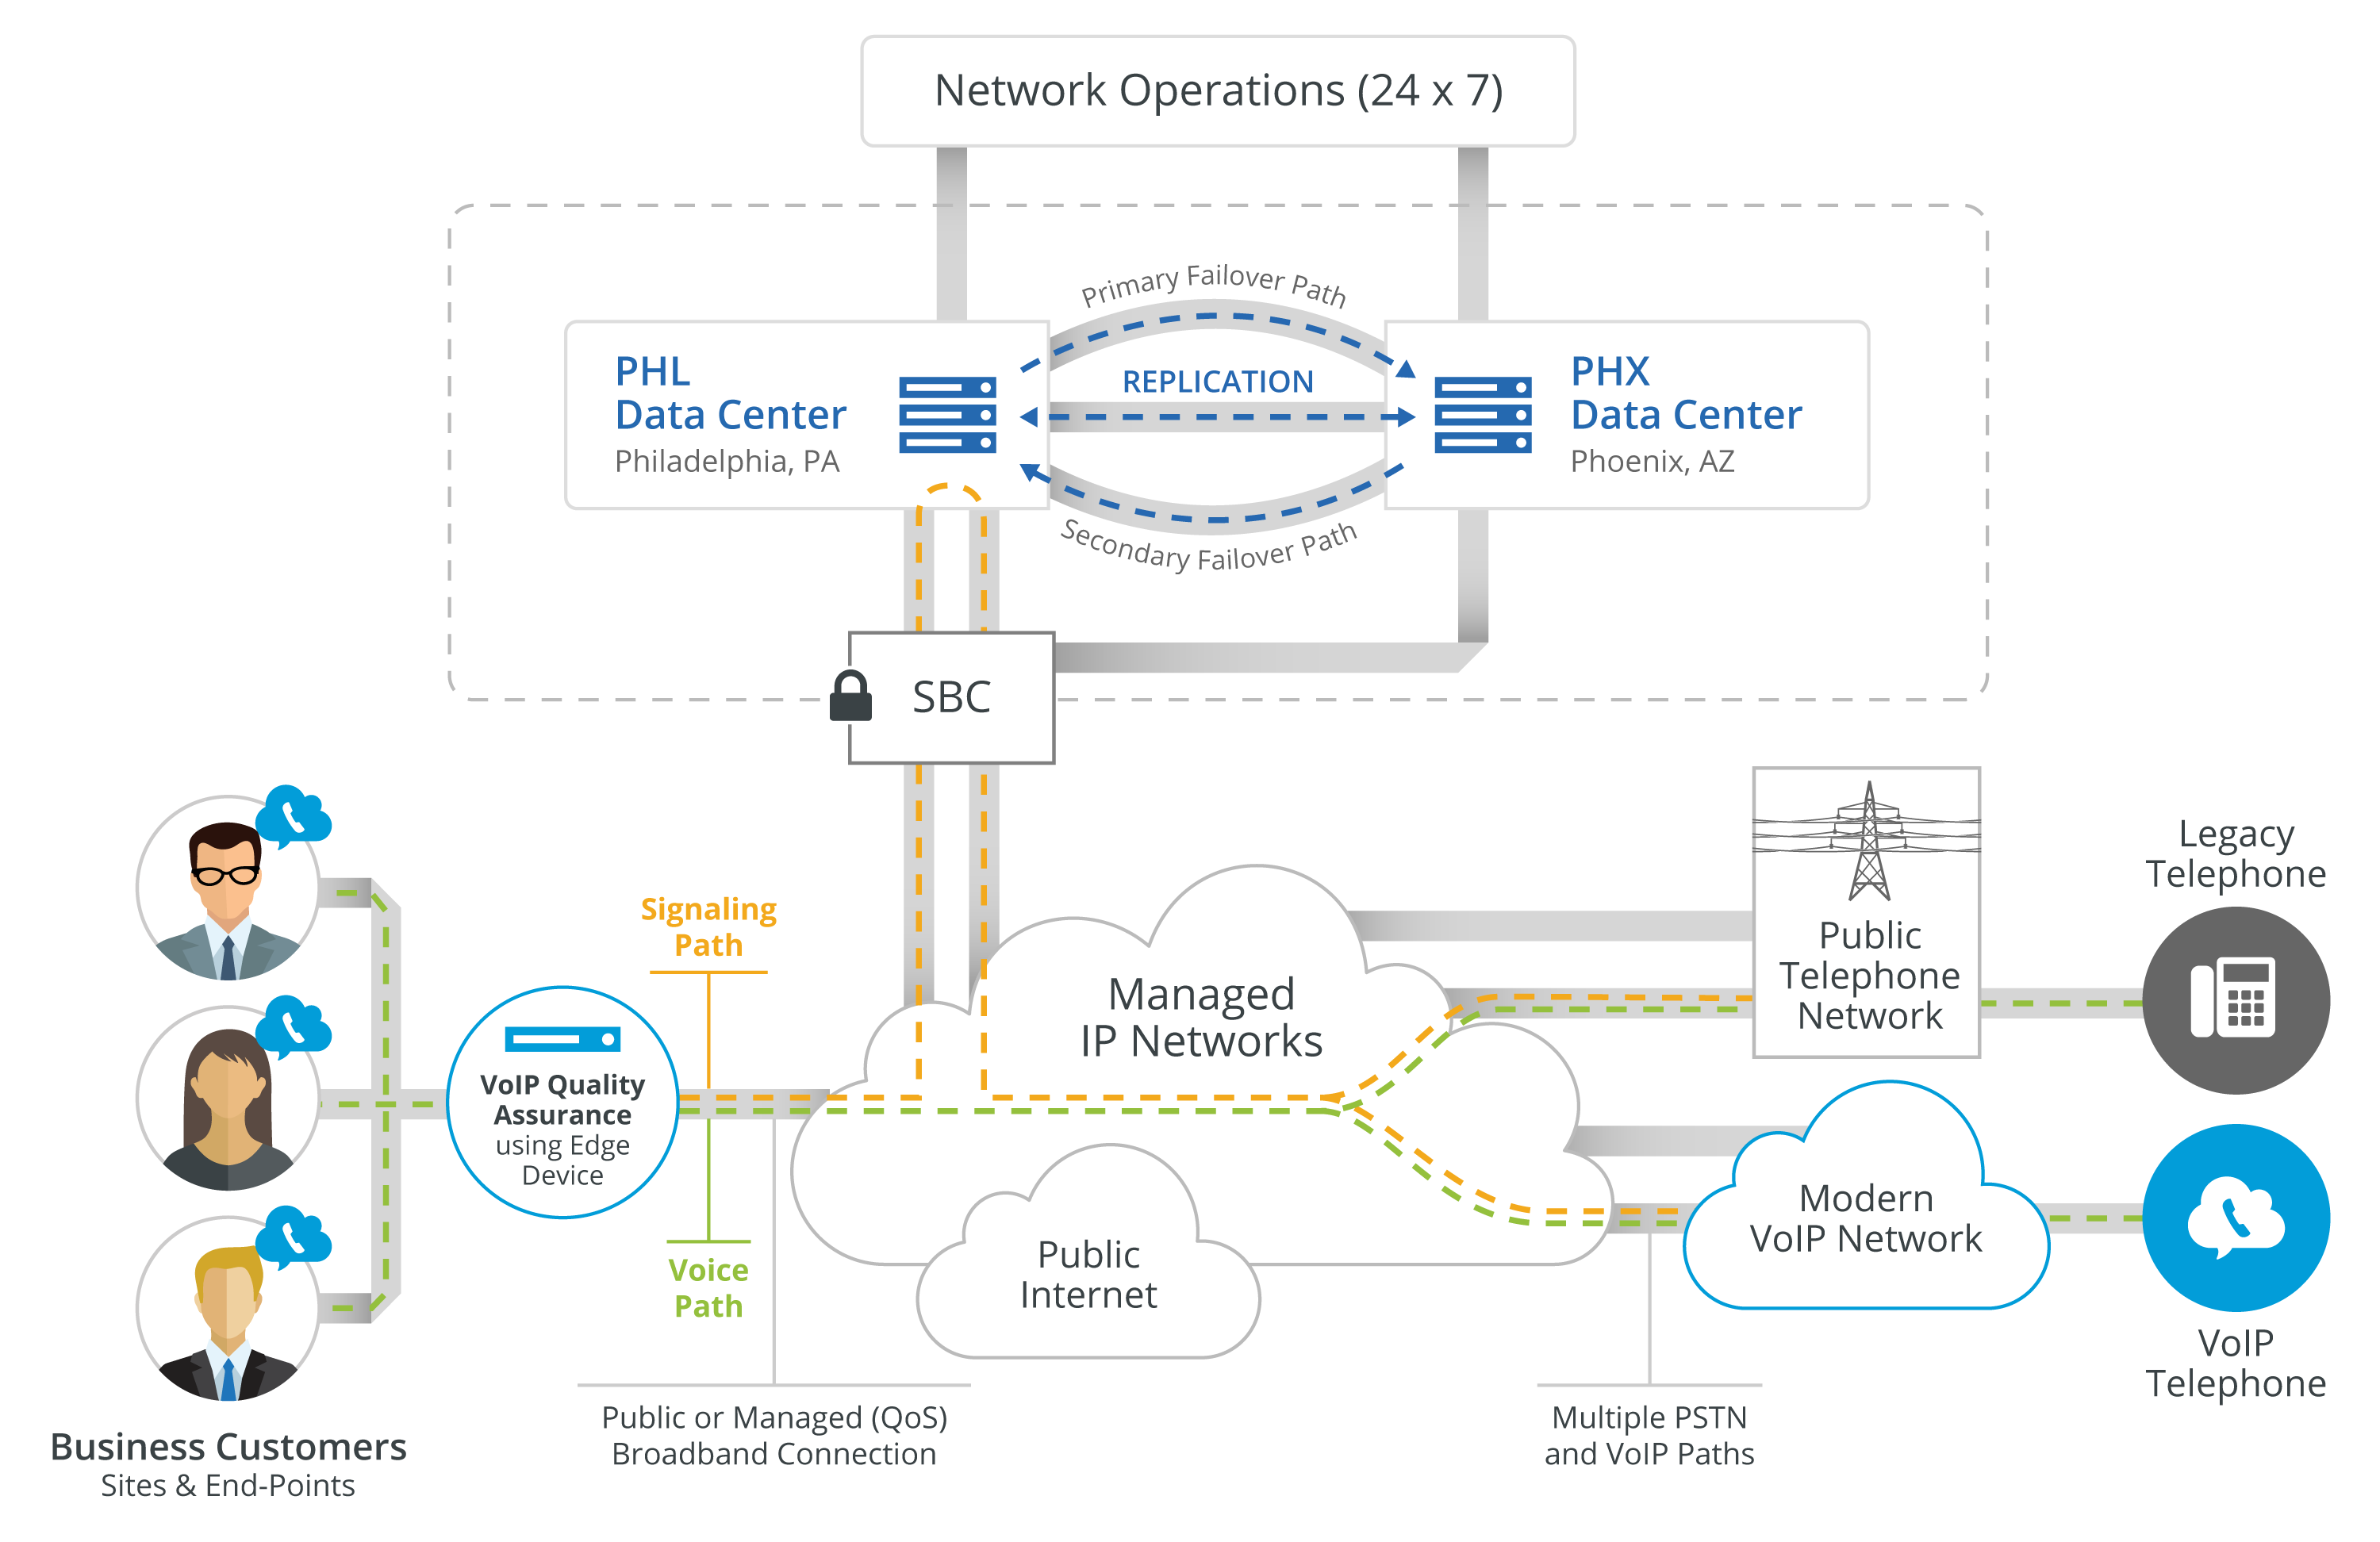 Network Operations, Managed IP Networks, Data Center, Failover Path